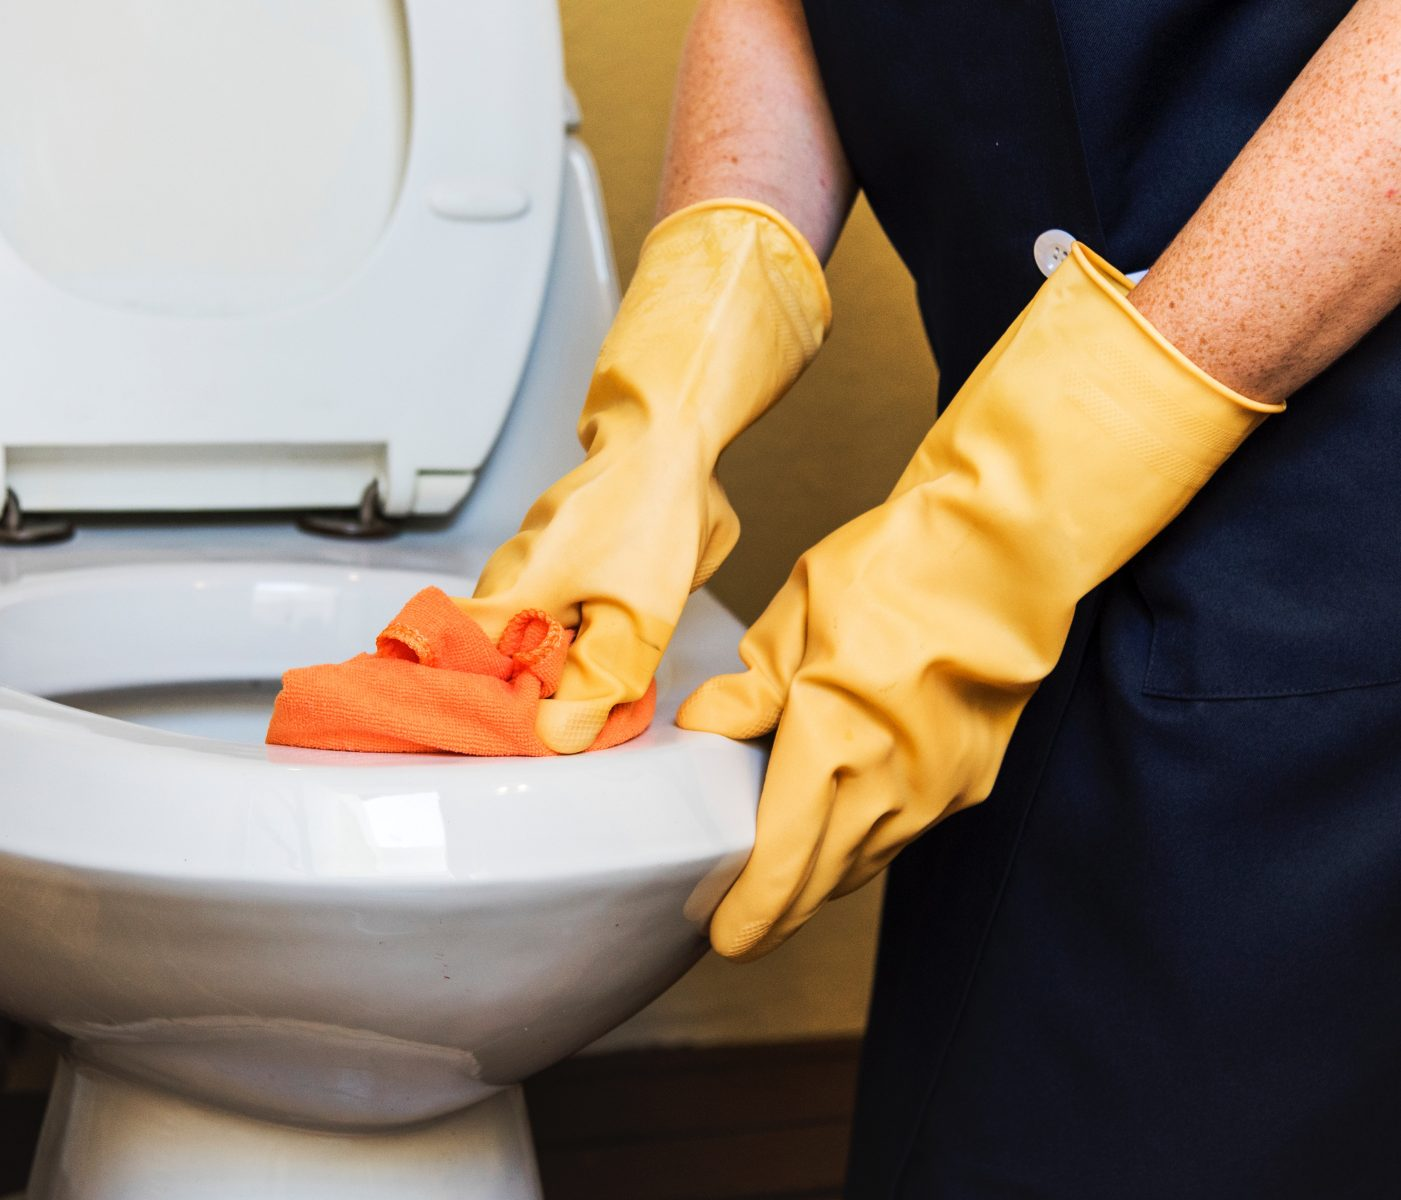 toilet cleaning, yellow rubber gloves